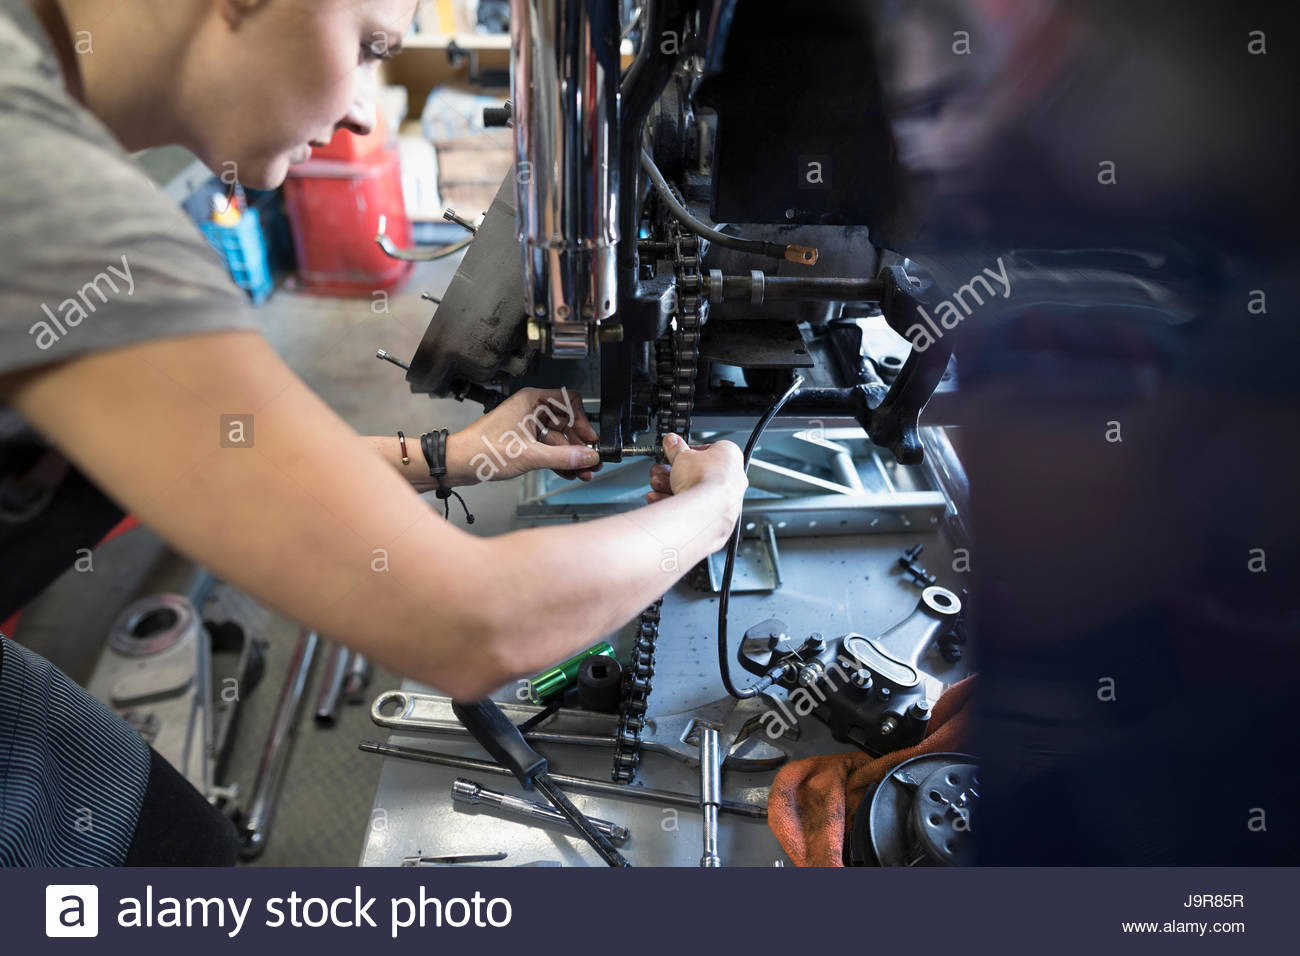 Female auto mechanic fixing motorcycle in auto repair shop - Stock Image